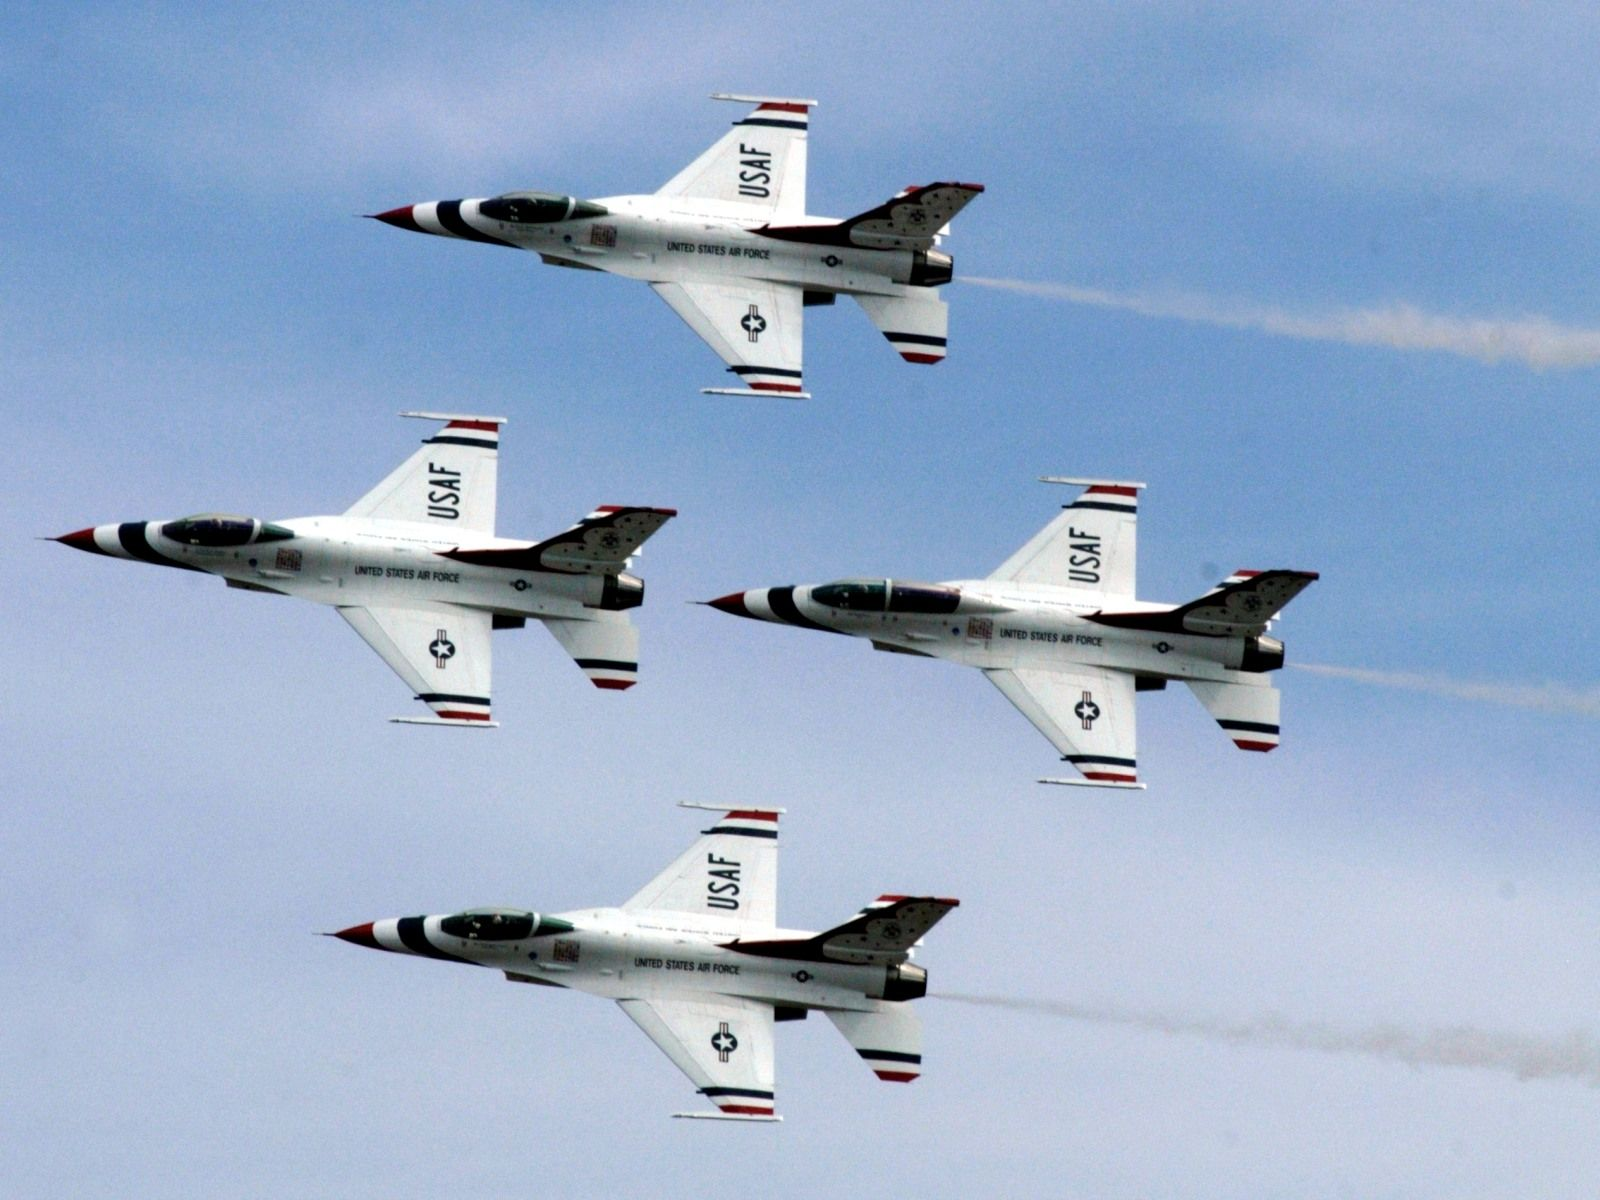 I love the Air Force Thunderbirds